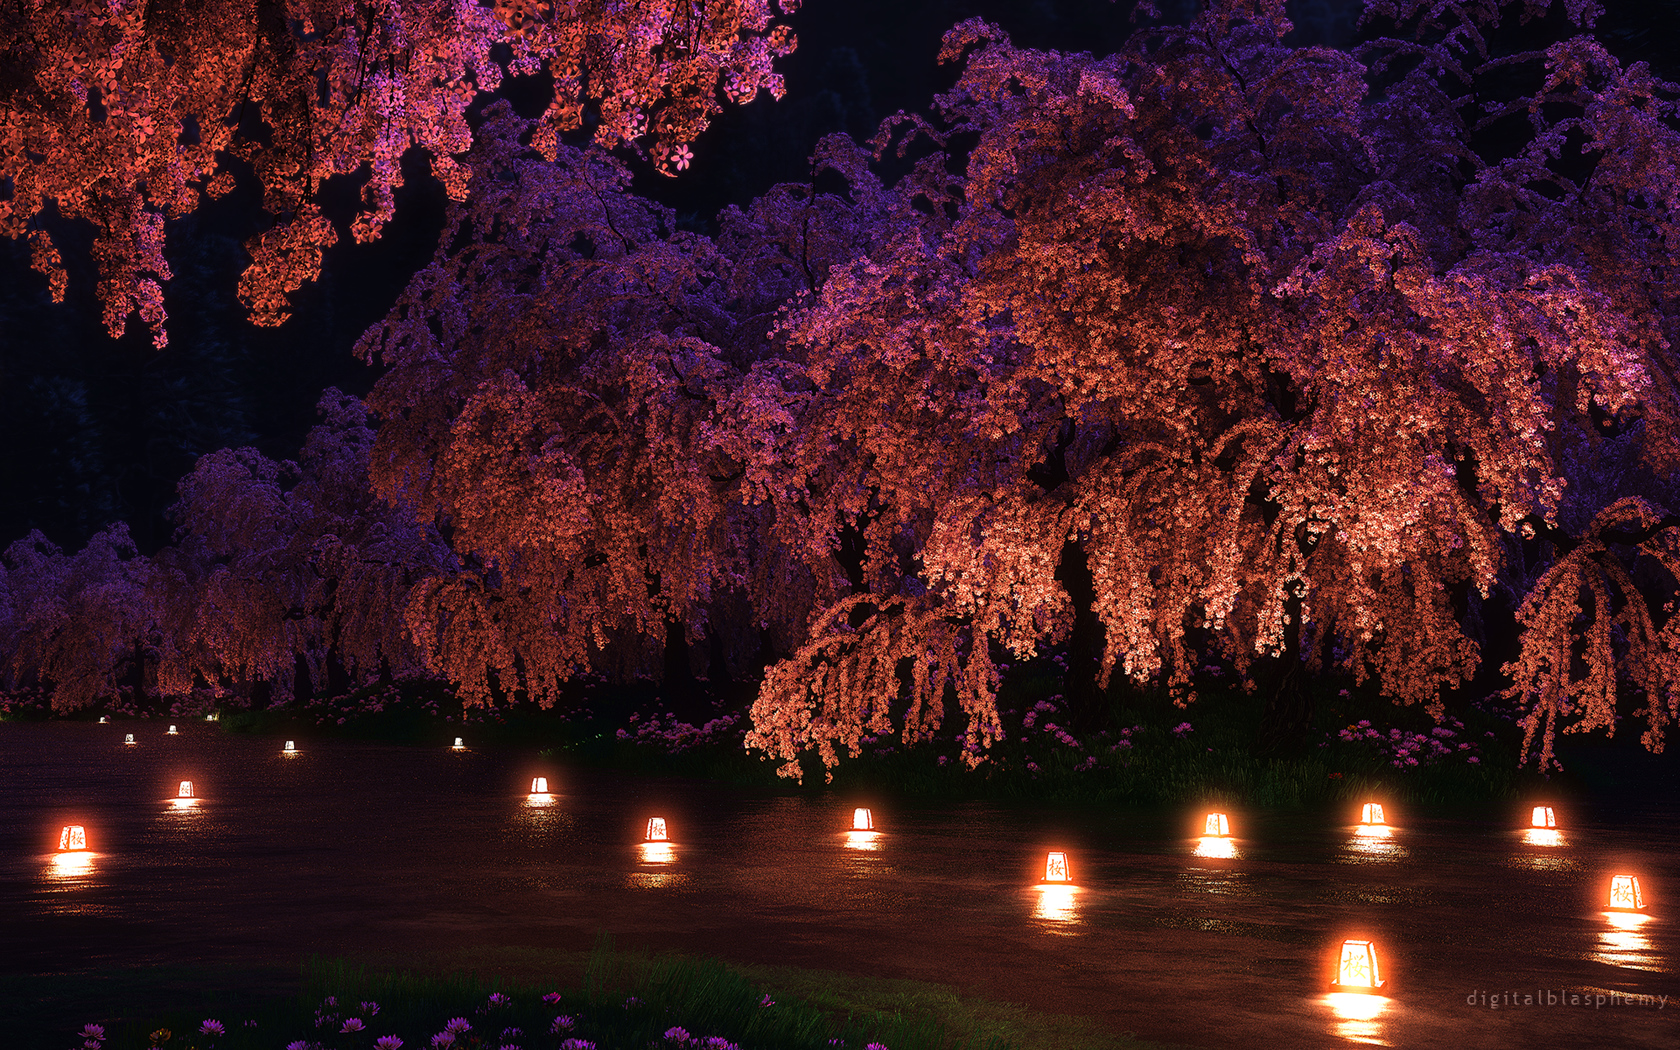 Digital Blasphemy 3d Wallpaper Sakura Night 2013 Free